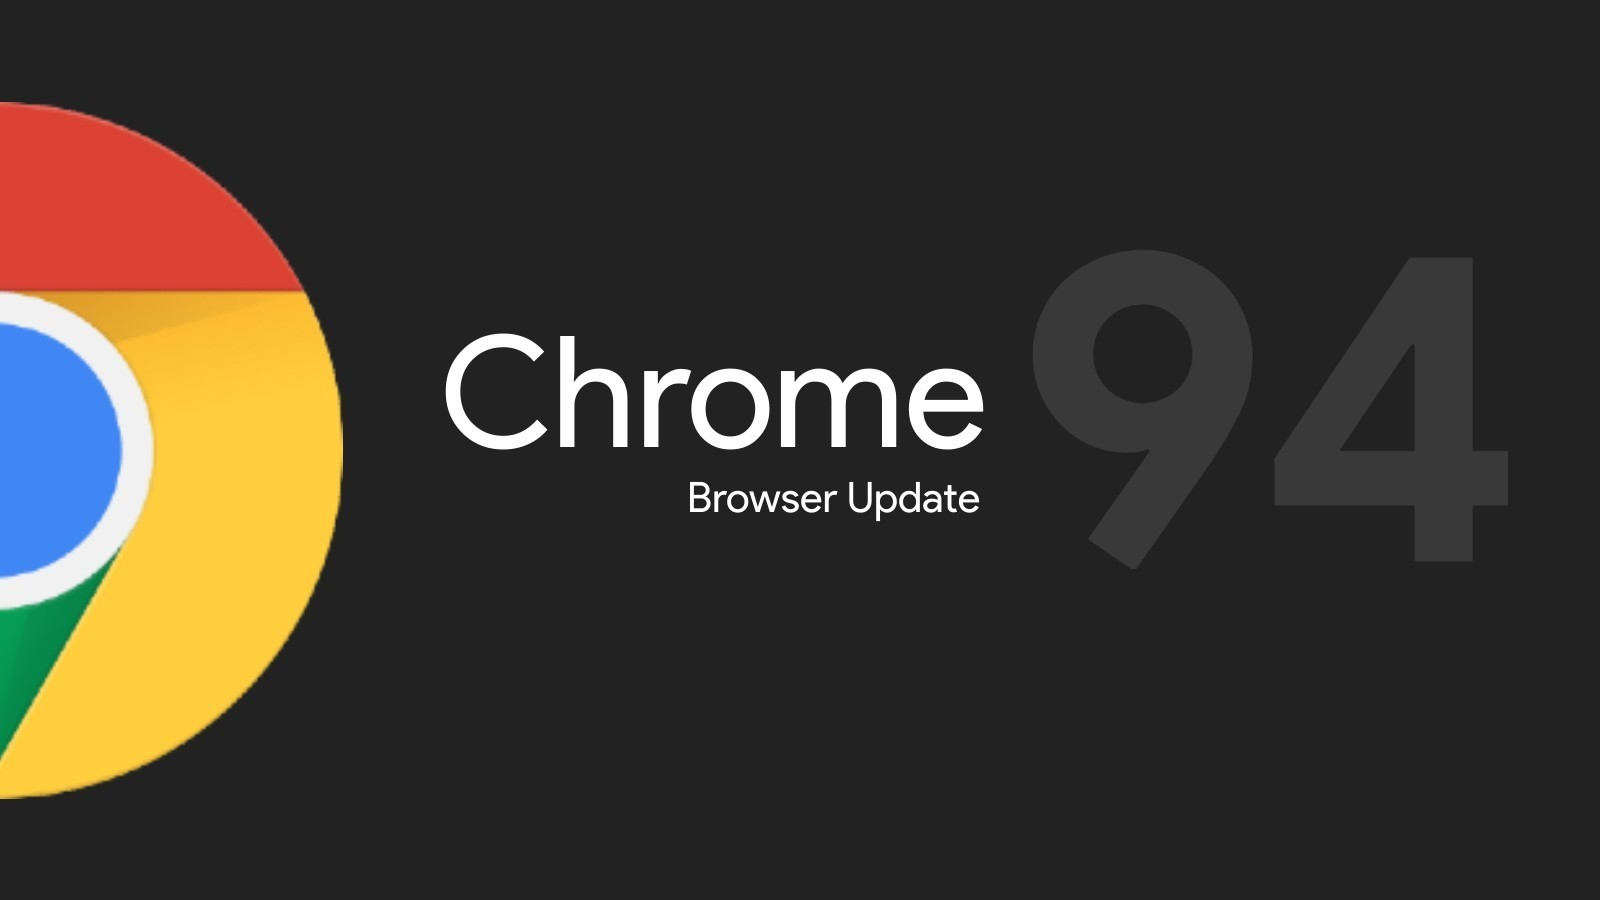 Chrome 94 rolling out now with Sharing Hub, HTTPS-First mode, 'What's New' page, and more